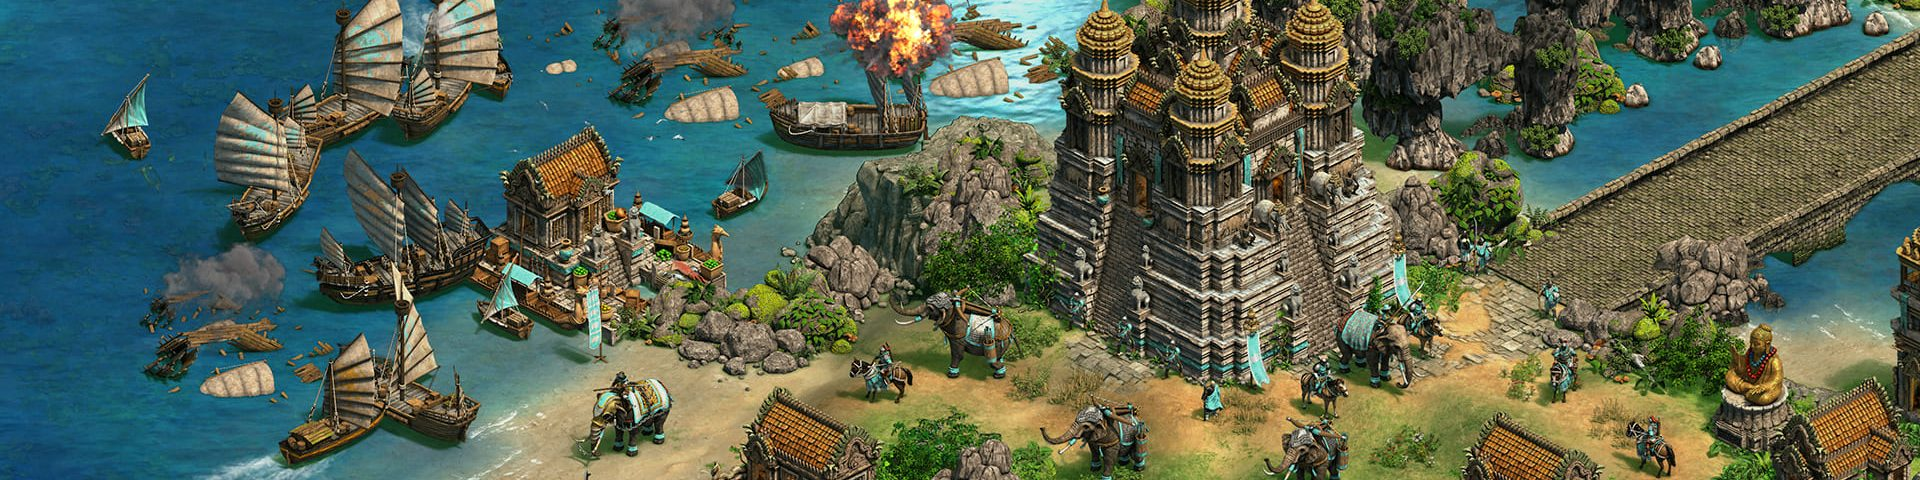 """Age of Empires II: Definitive Edition"" ¿Podría convertirse en un juego competitivo?"